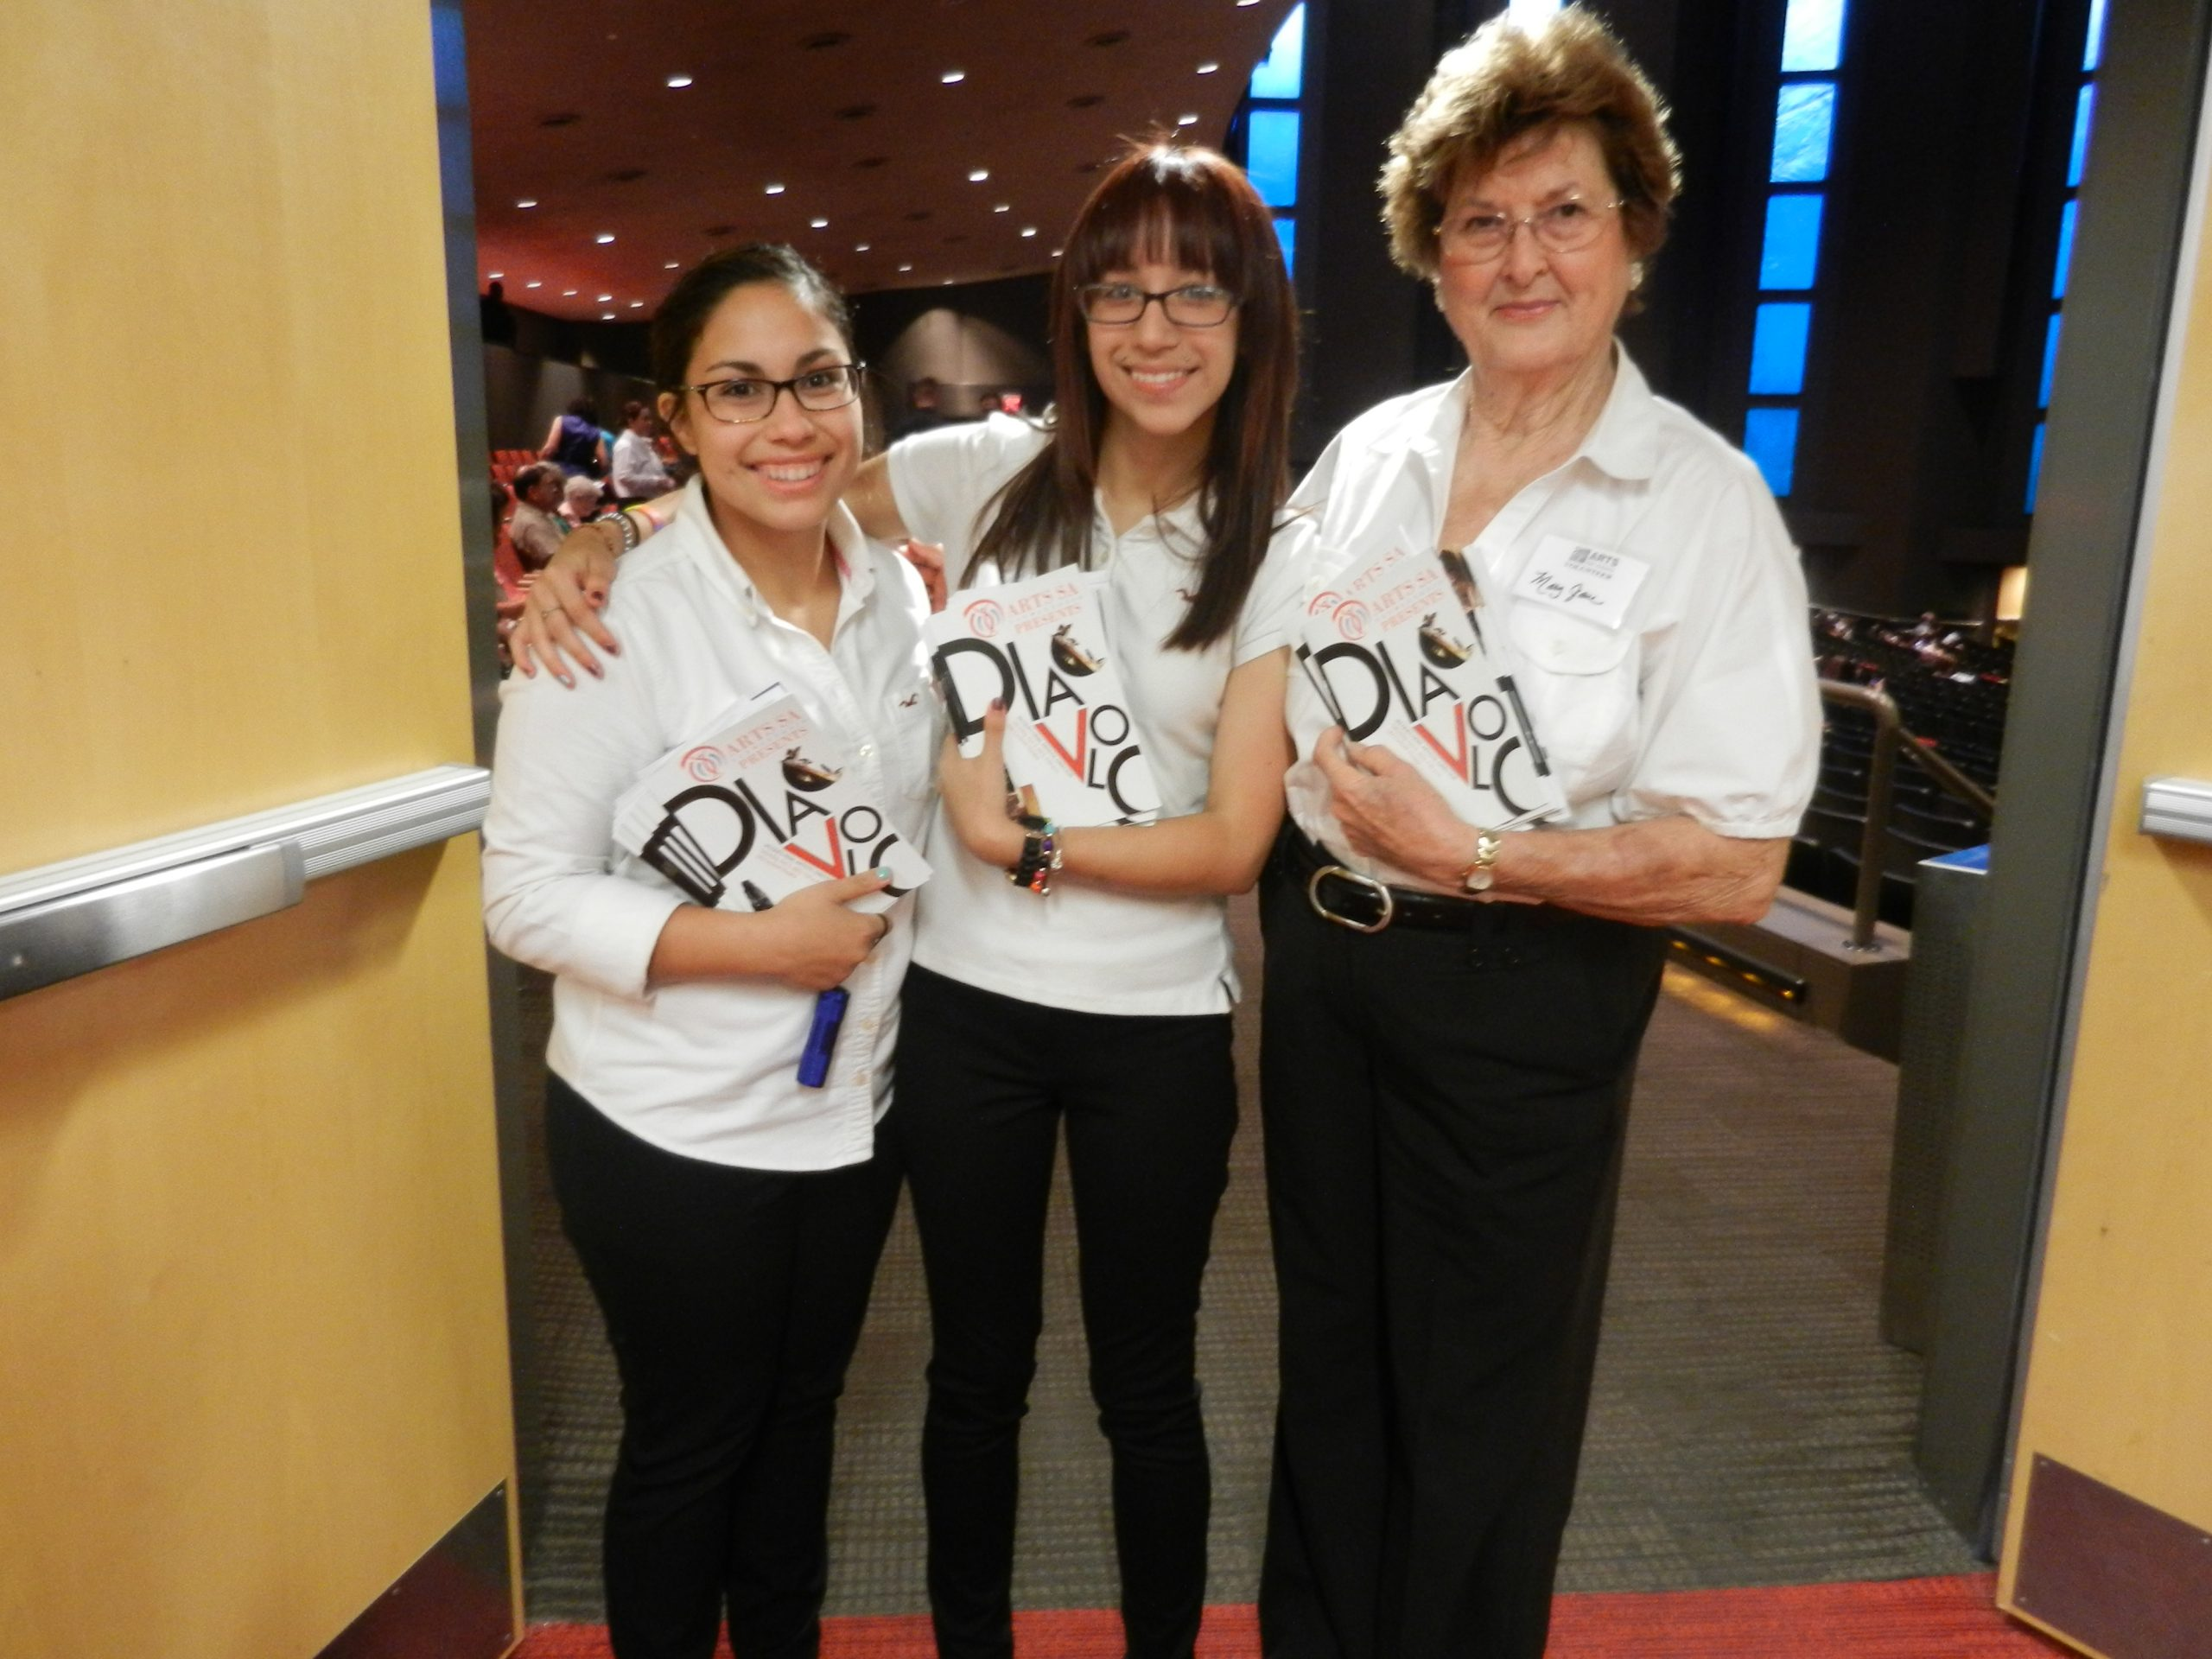 Volunteers at this season's Diavolo Dance Theatre event. Photo by Melanie Robinson.